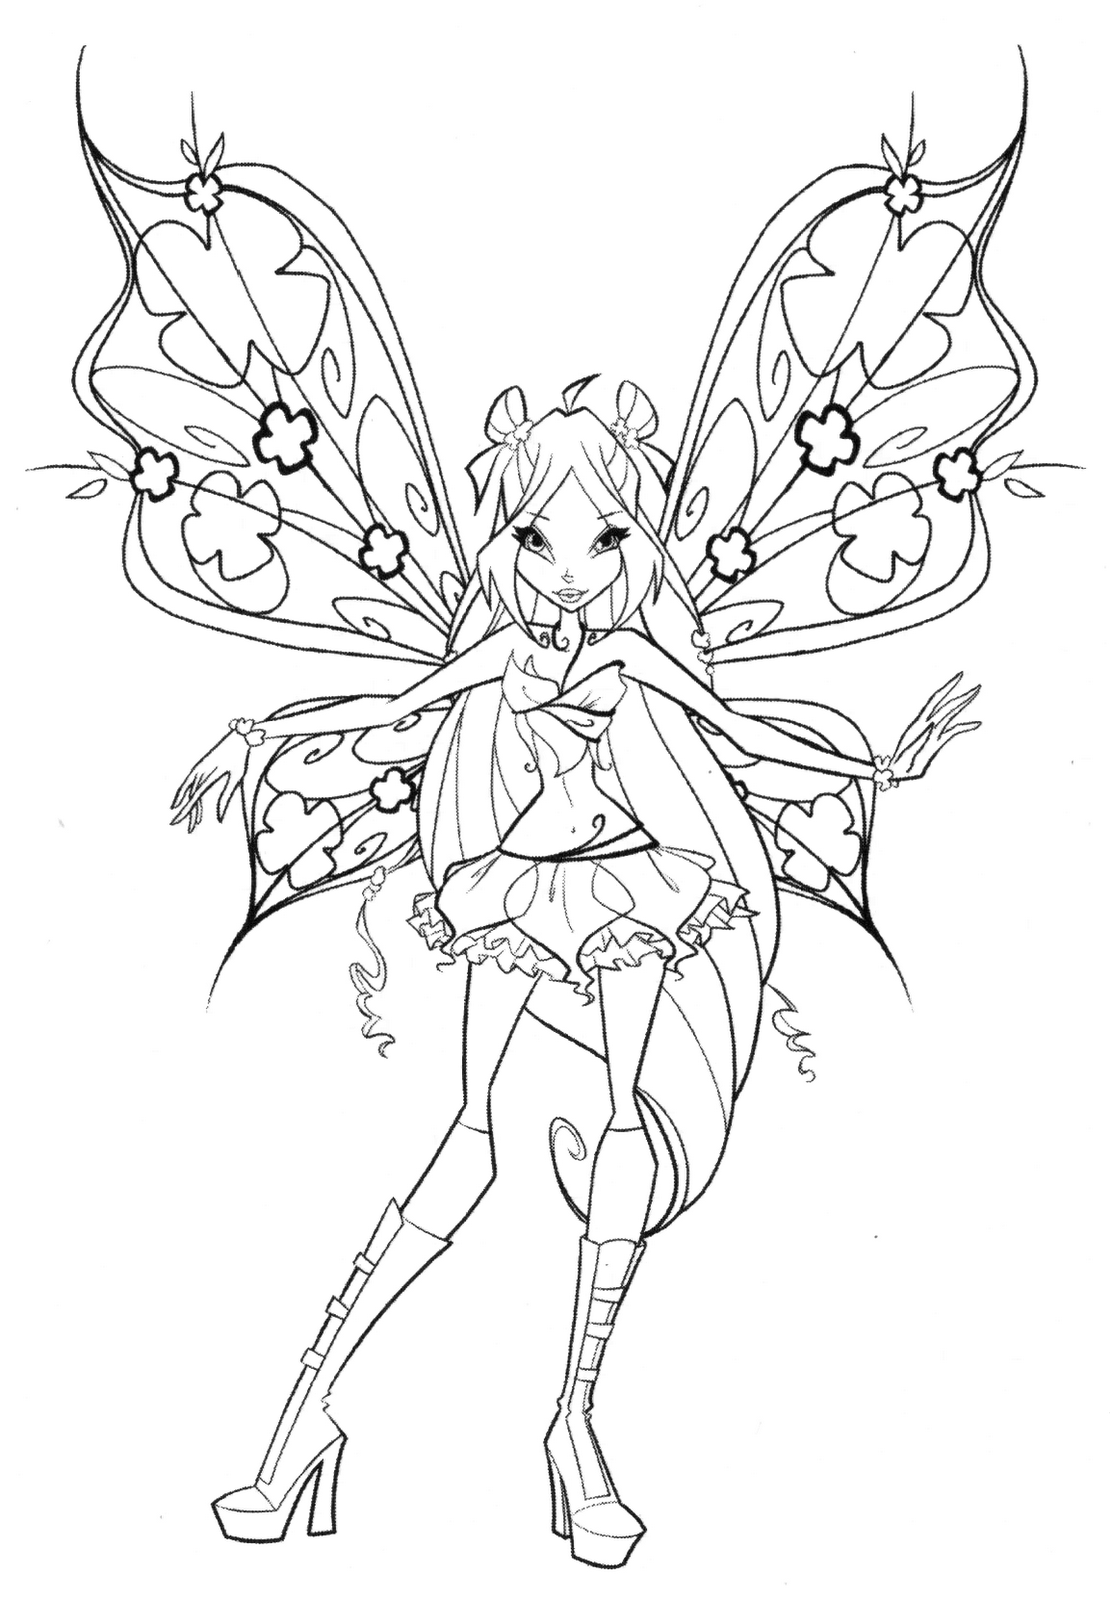 winx club colouring pages believix winx believix coloring pages to download and print for free club believix pages colouring winx